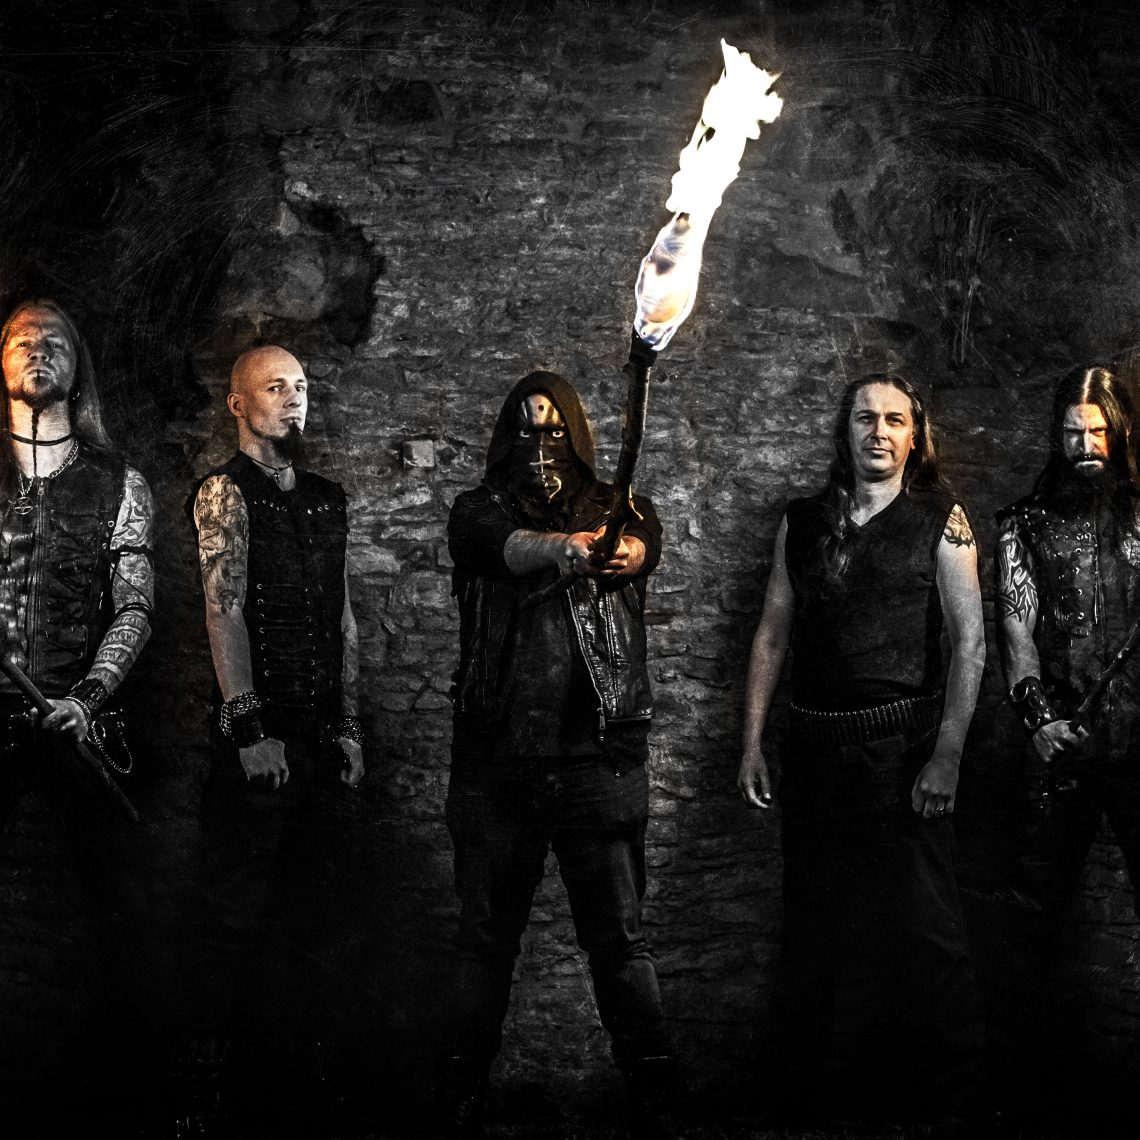 Master's Call premiere 'From Once Beneath The Cursed' music video